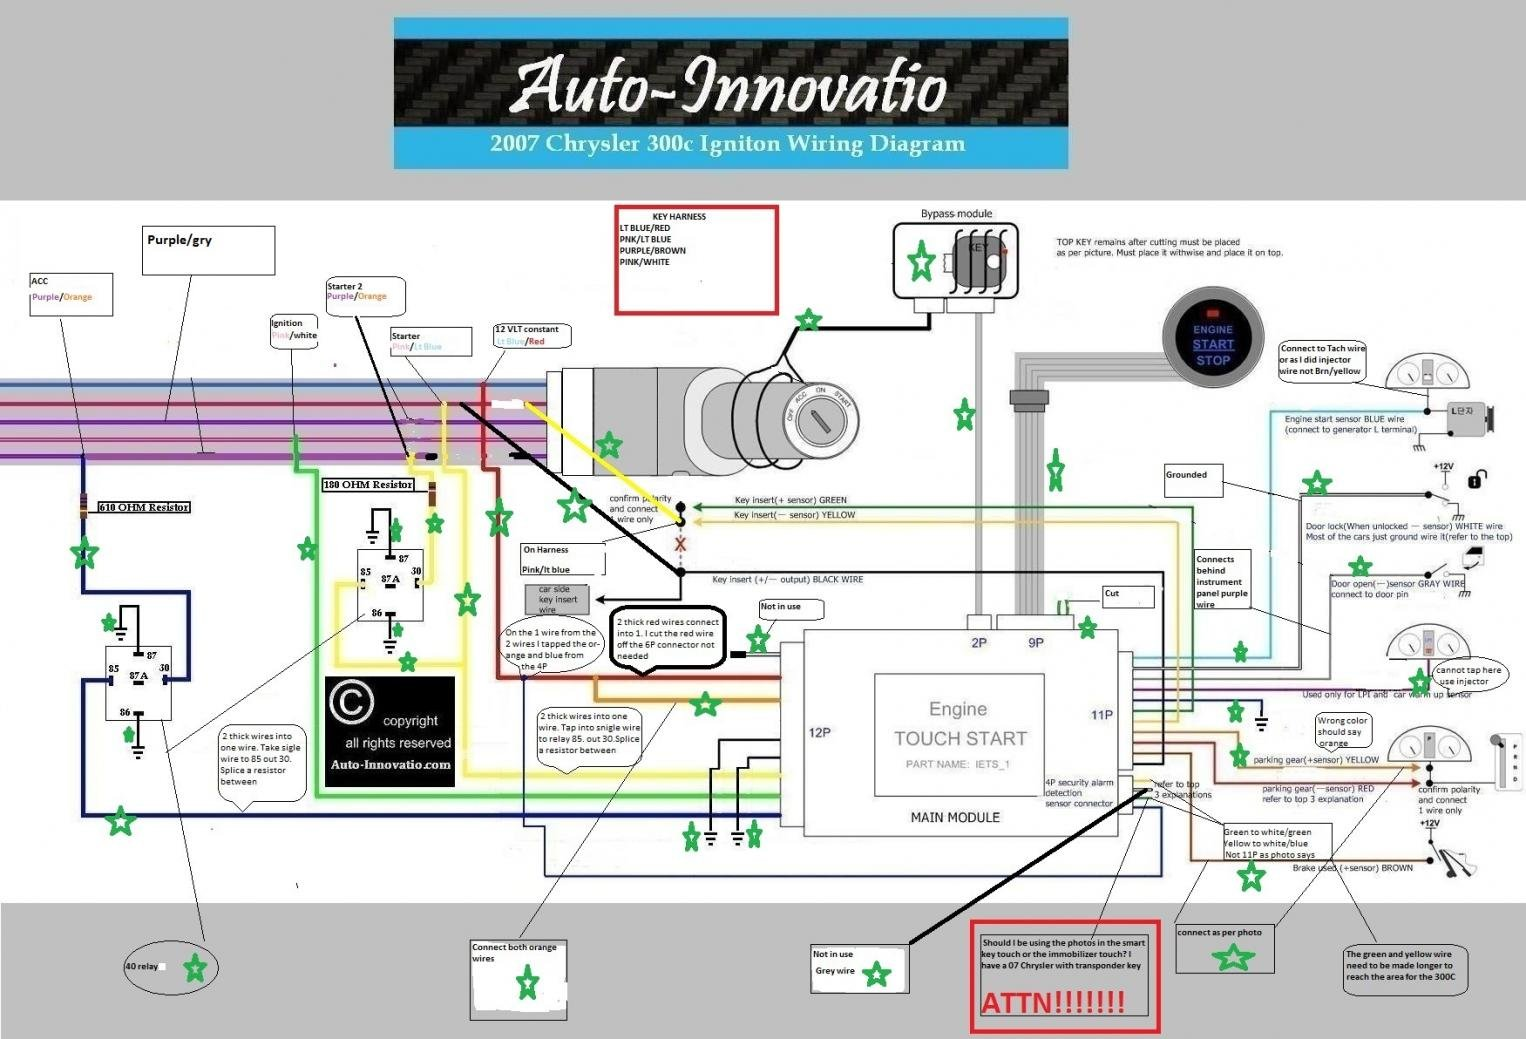 38607d1317073730 keyless push button start touch button 2007 chrysler 300c vehicle igniton wiring diagram 2 chrysler 300m stereo wire diagram roslonek net,Wiring Harness Diagram For A 2001 Chrysler 300m